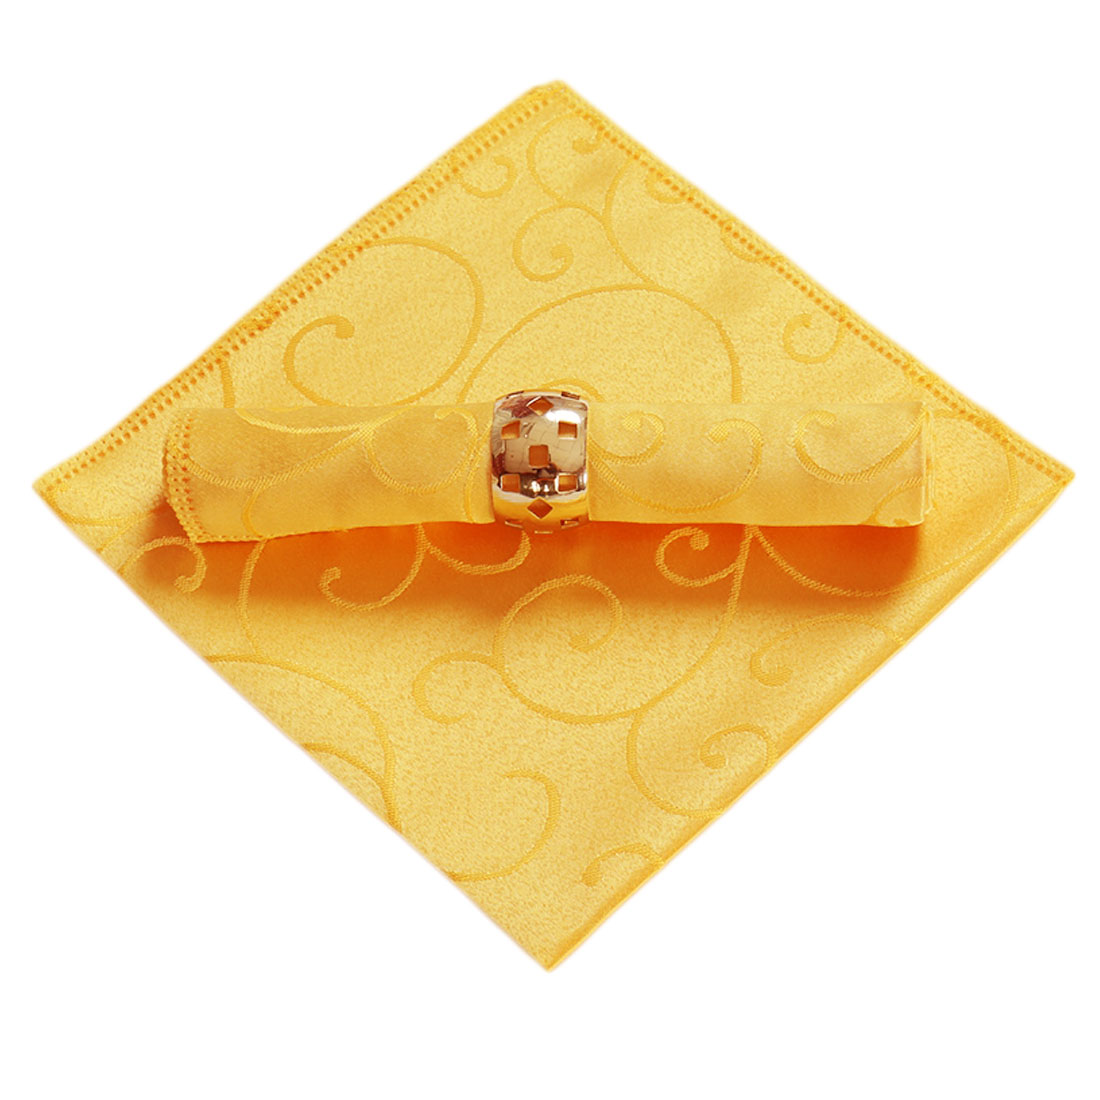 Home Restaurant Cafe Fabric Square Table Glass Decor Cleaning Dinner Cloth Napkin Light Orange